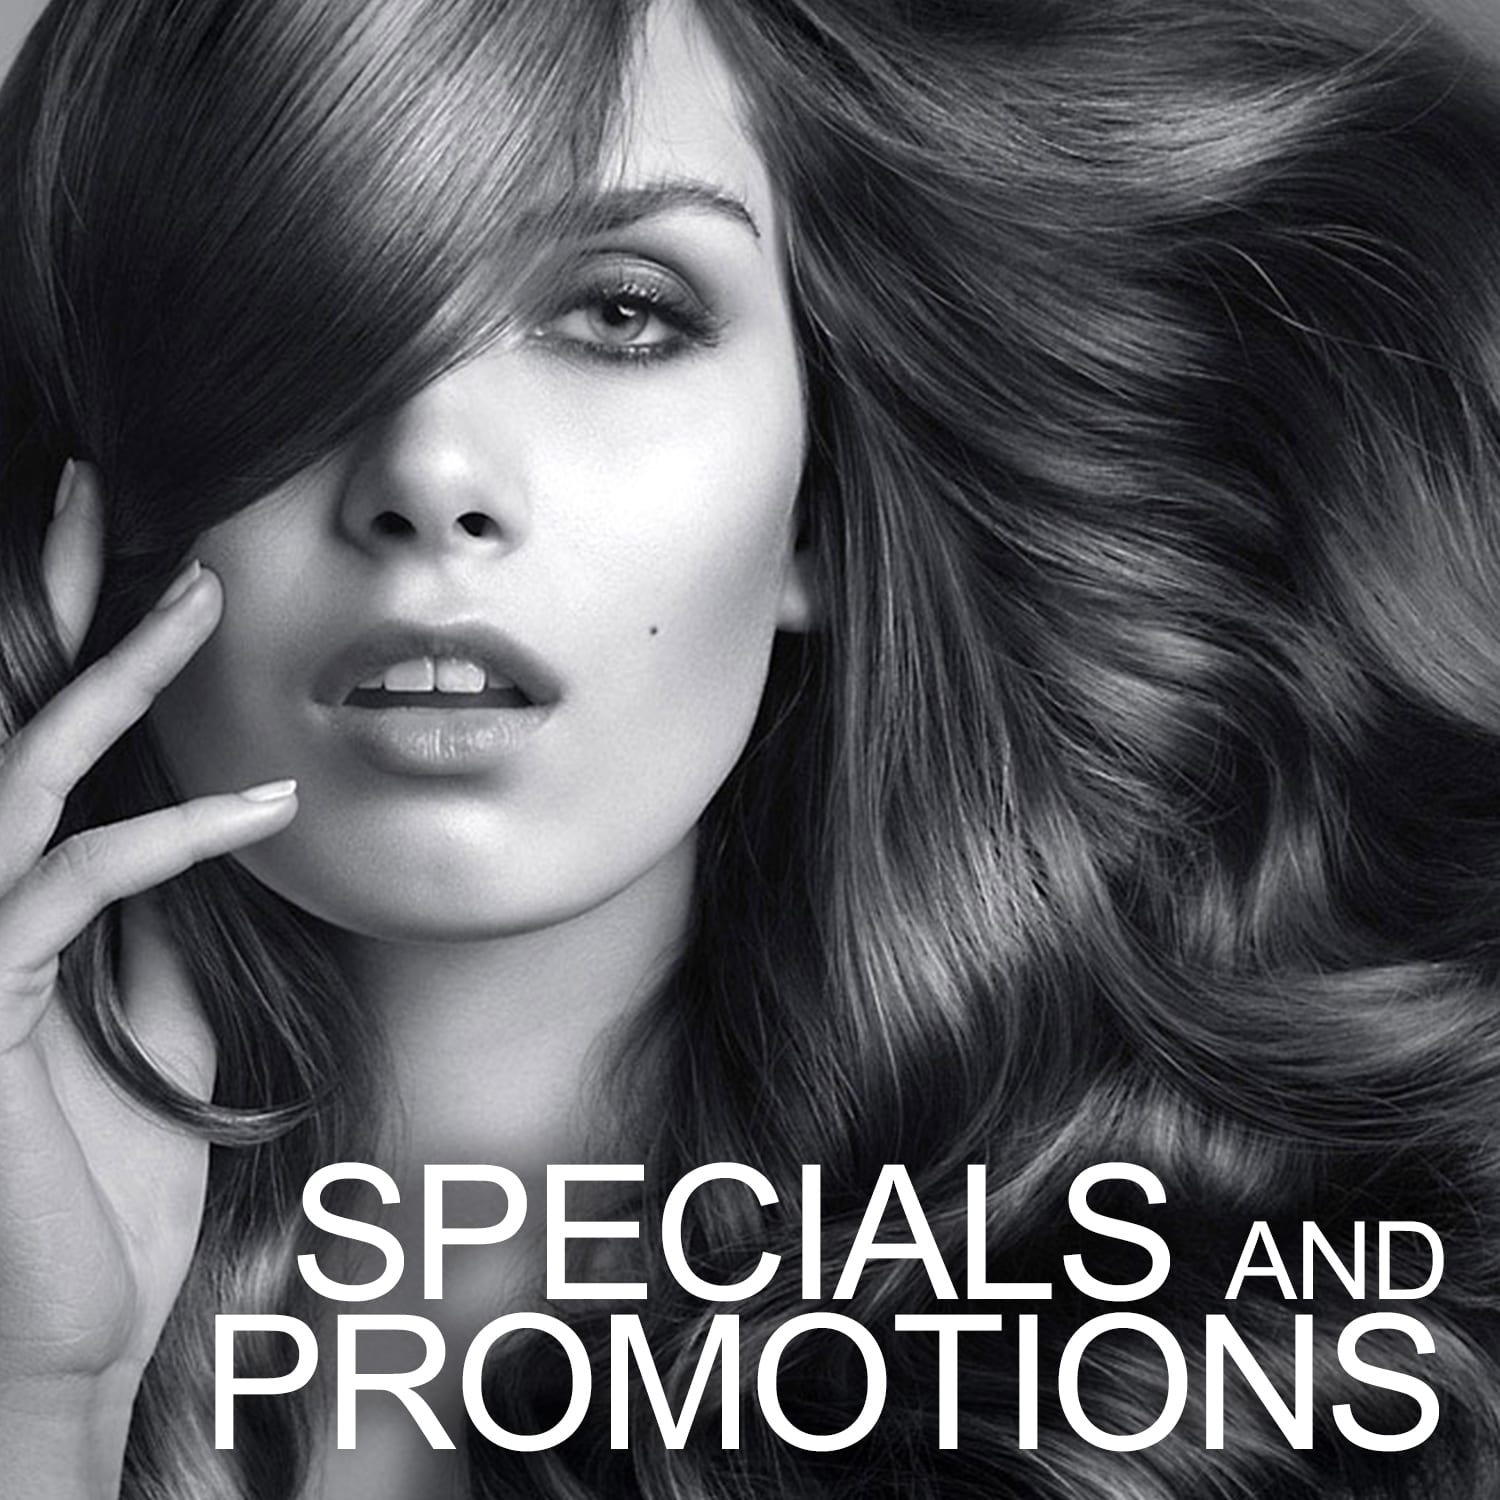 hair stylist princeton nj